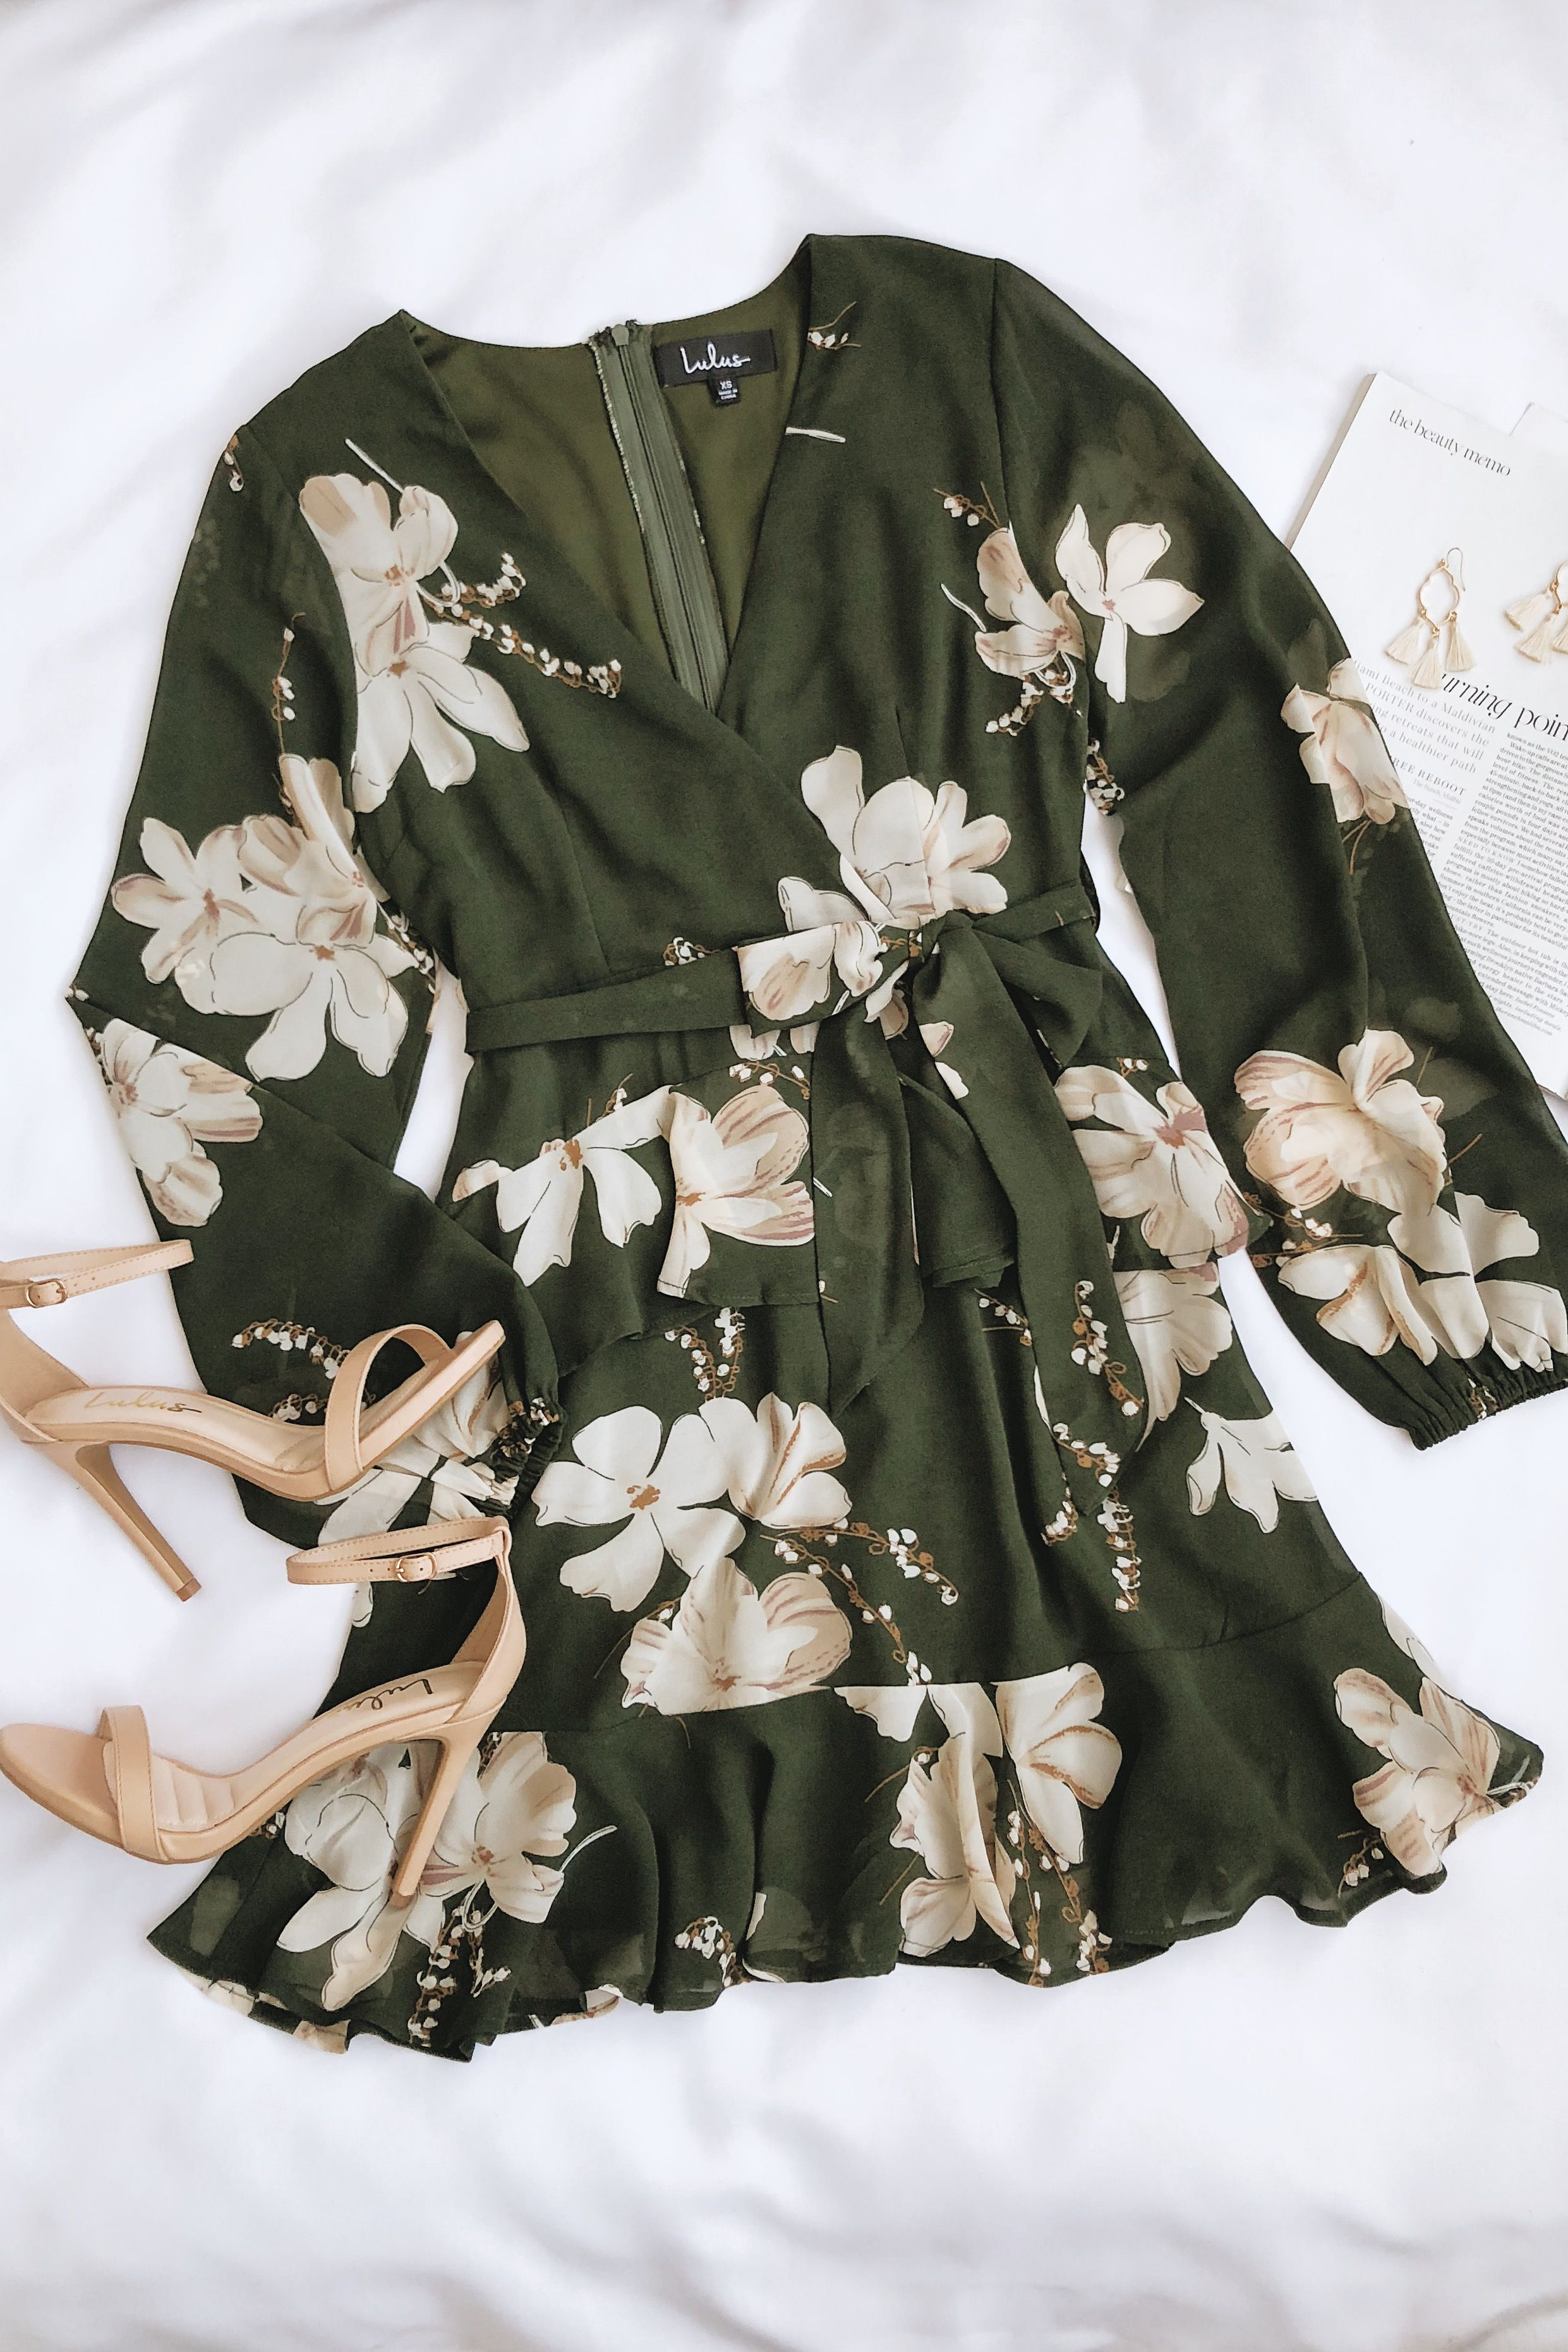 Kmart wedding decorations january 2019 Jasmine and Yours Olive Green Floral Print Long Sleeve Dress  Style